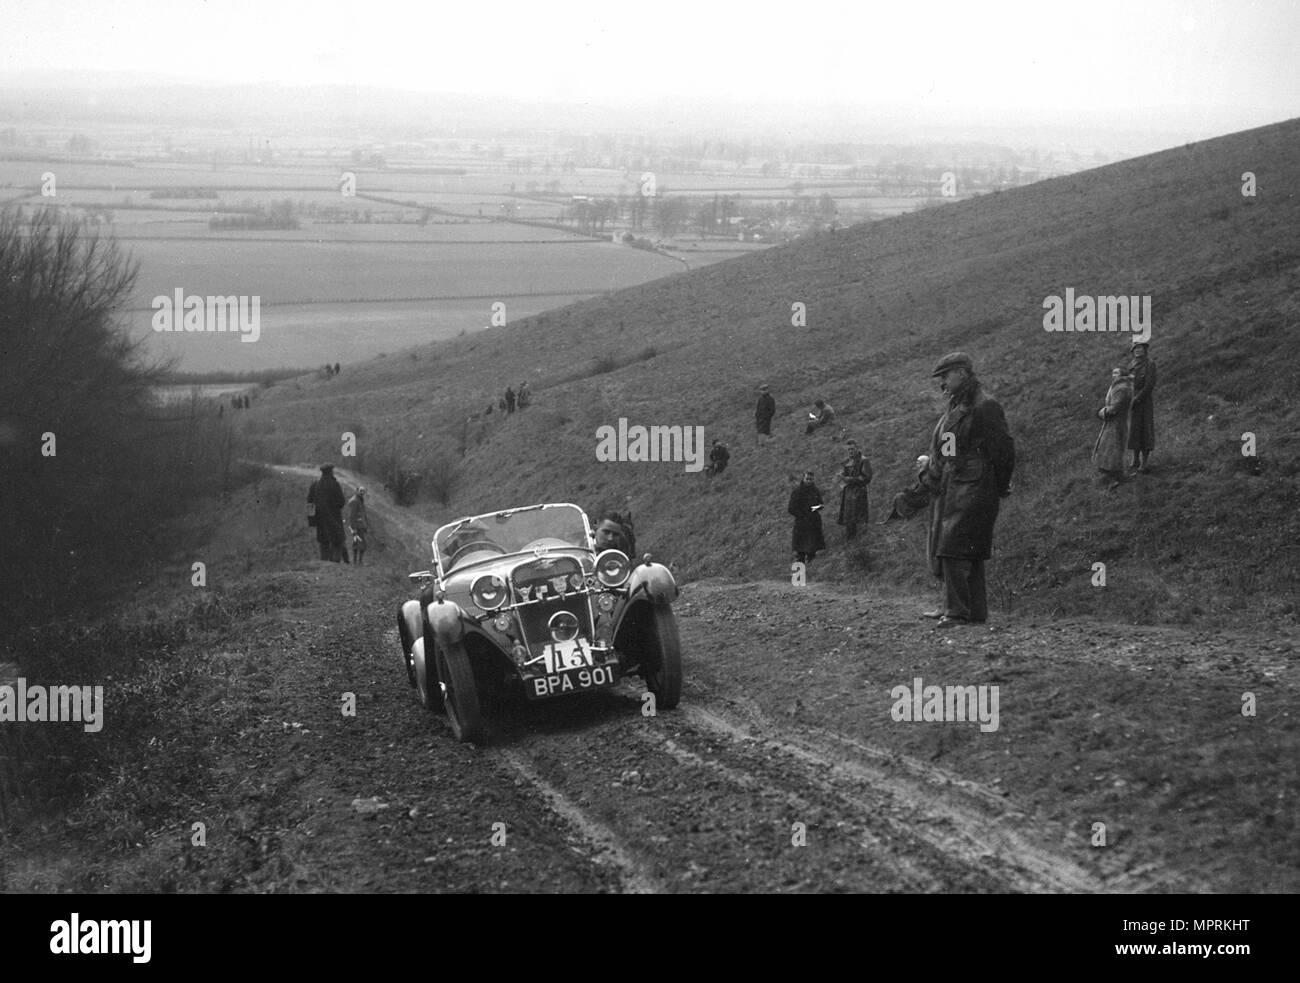 Singer Le Mans competing in a trial, Crowell Hill, Chinnor, Oxfordshire, 1930s. Artist: Bill Brunell. - Stock Image